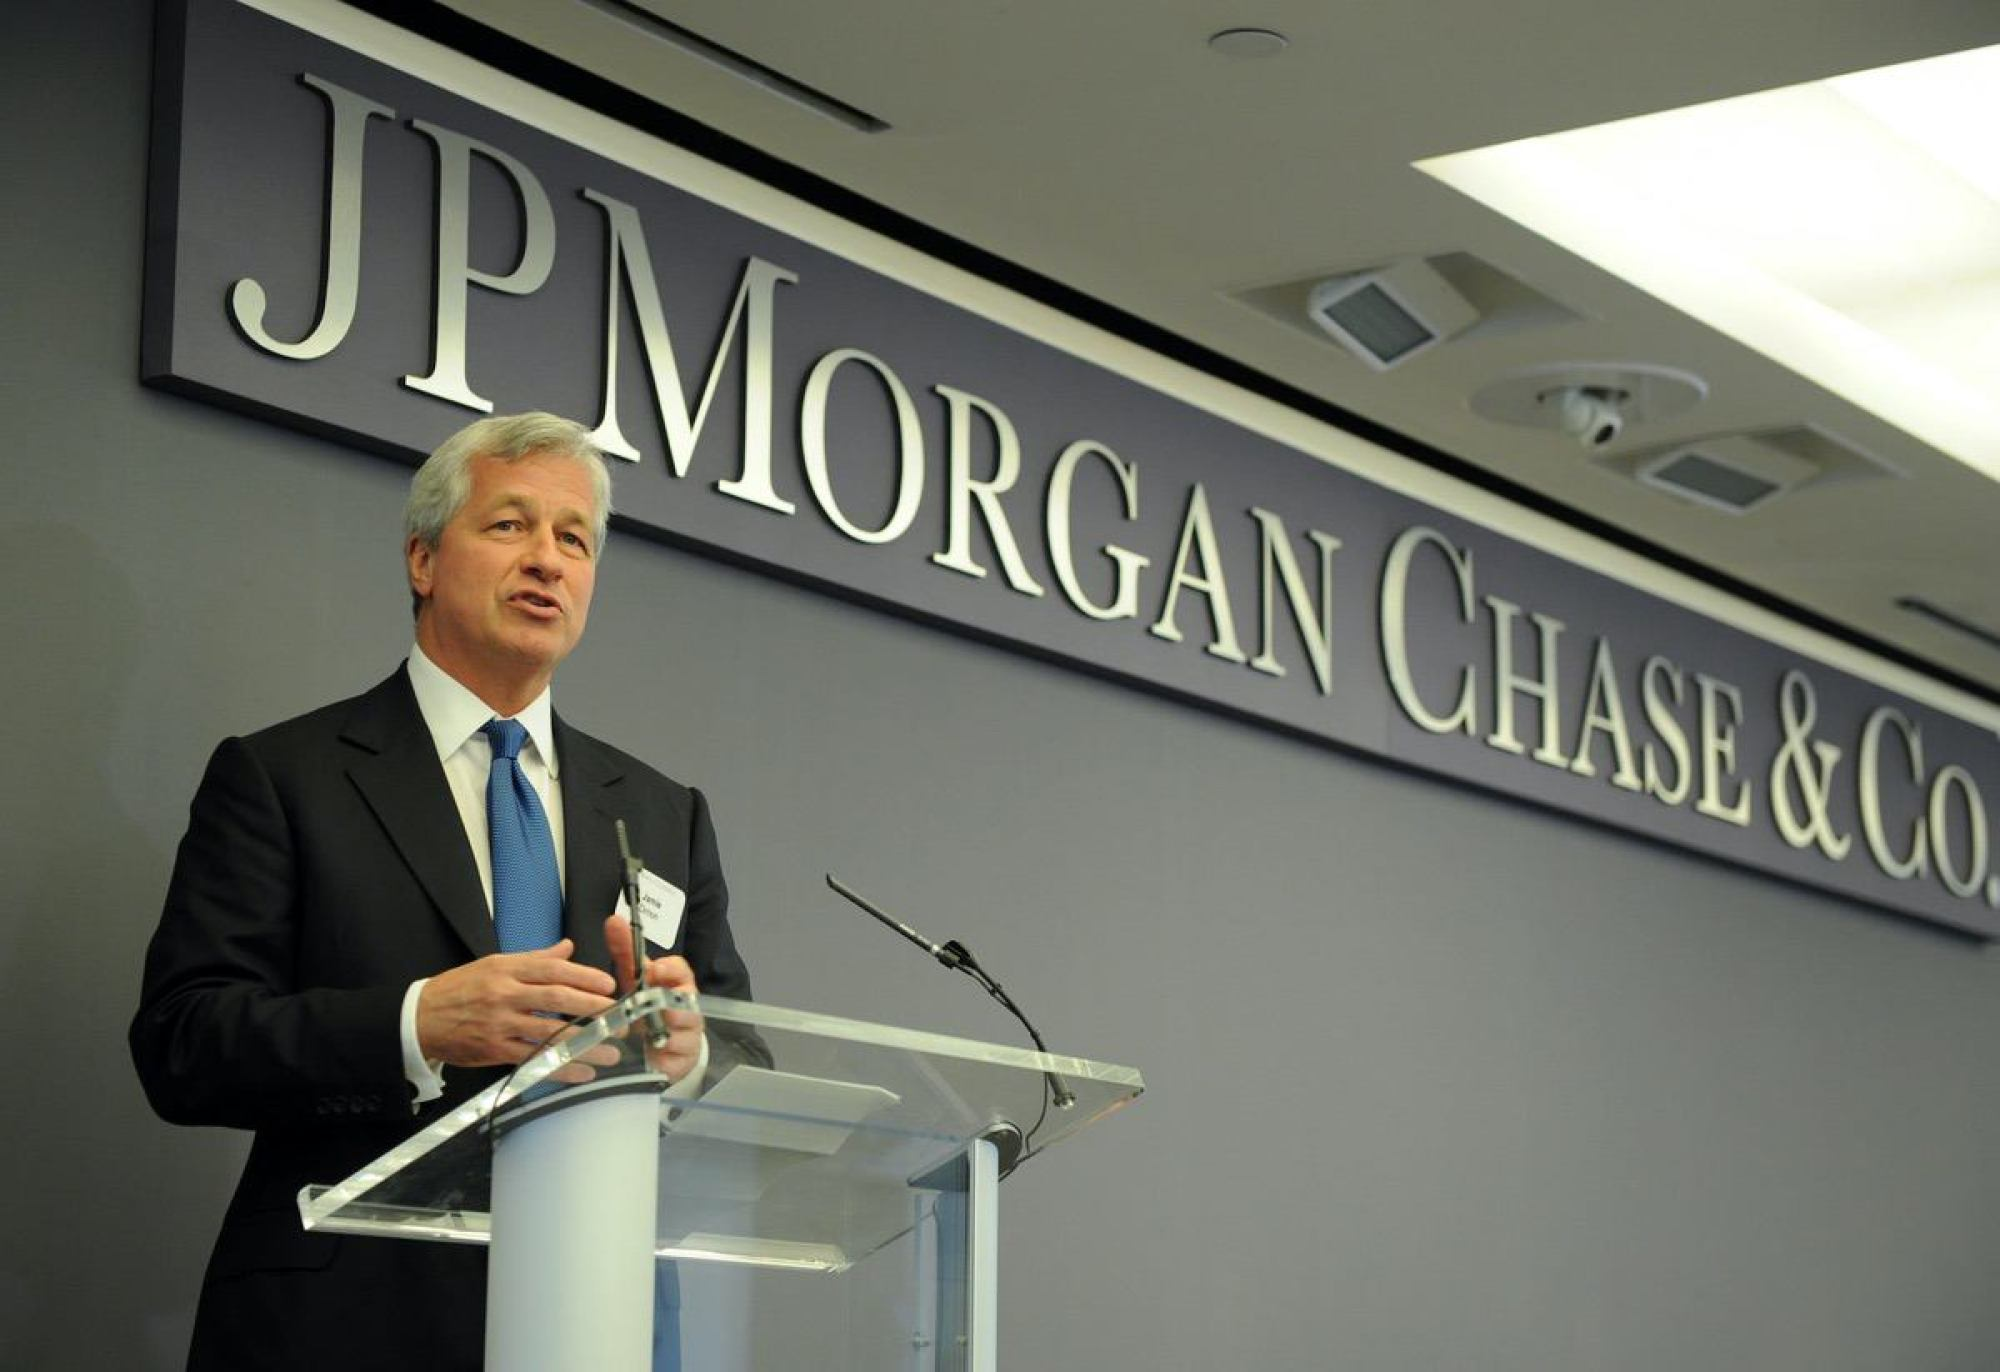 Jamie Dimon, JP Morgan & Chase Co. Chairman and CEO Monday, June 23, 2014, at JPMorgan Chase Headquarters in New York. JP Morgan's risk management office lost 6.2 Billion in derivatives in 2012. (Photo by Diane Bondareff/Invision for JPMorgan Chase/AP Images)